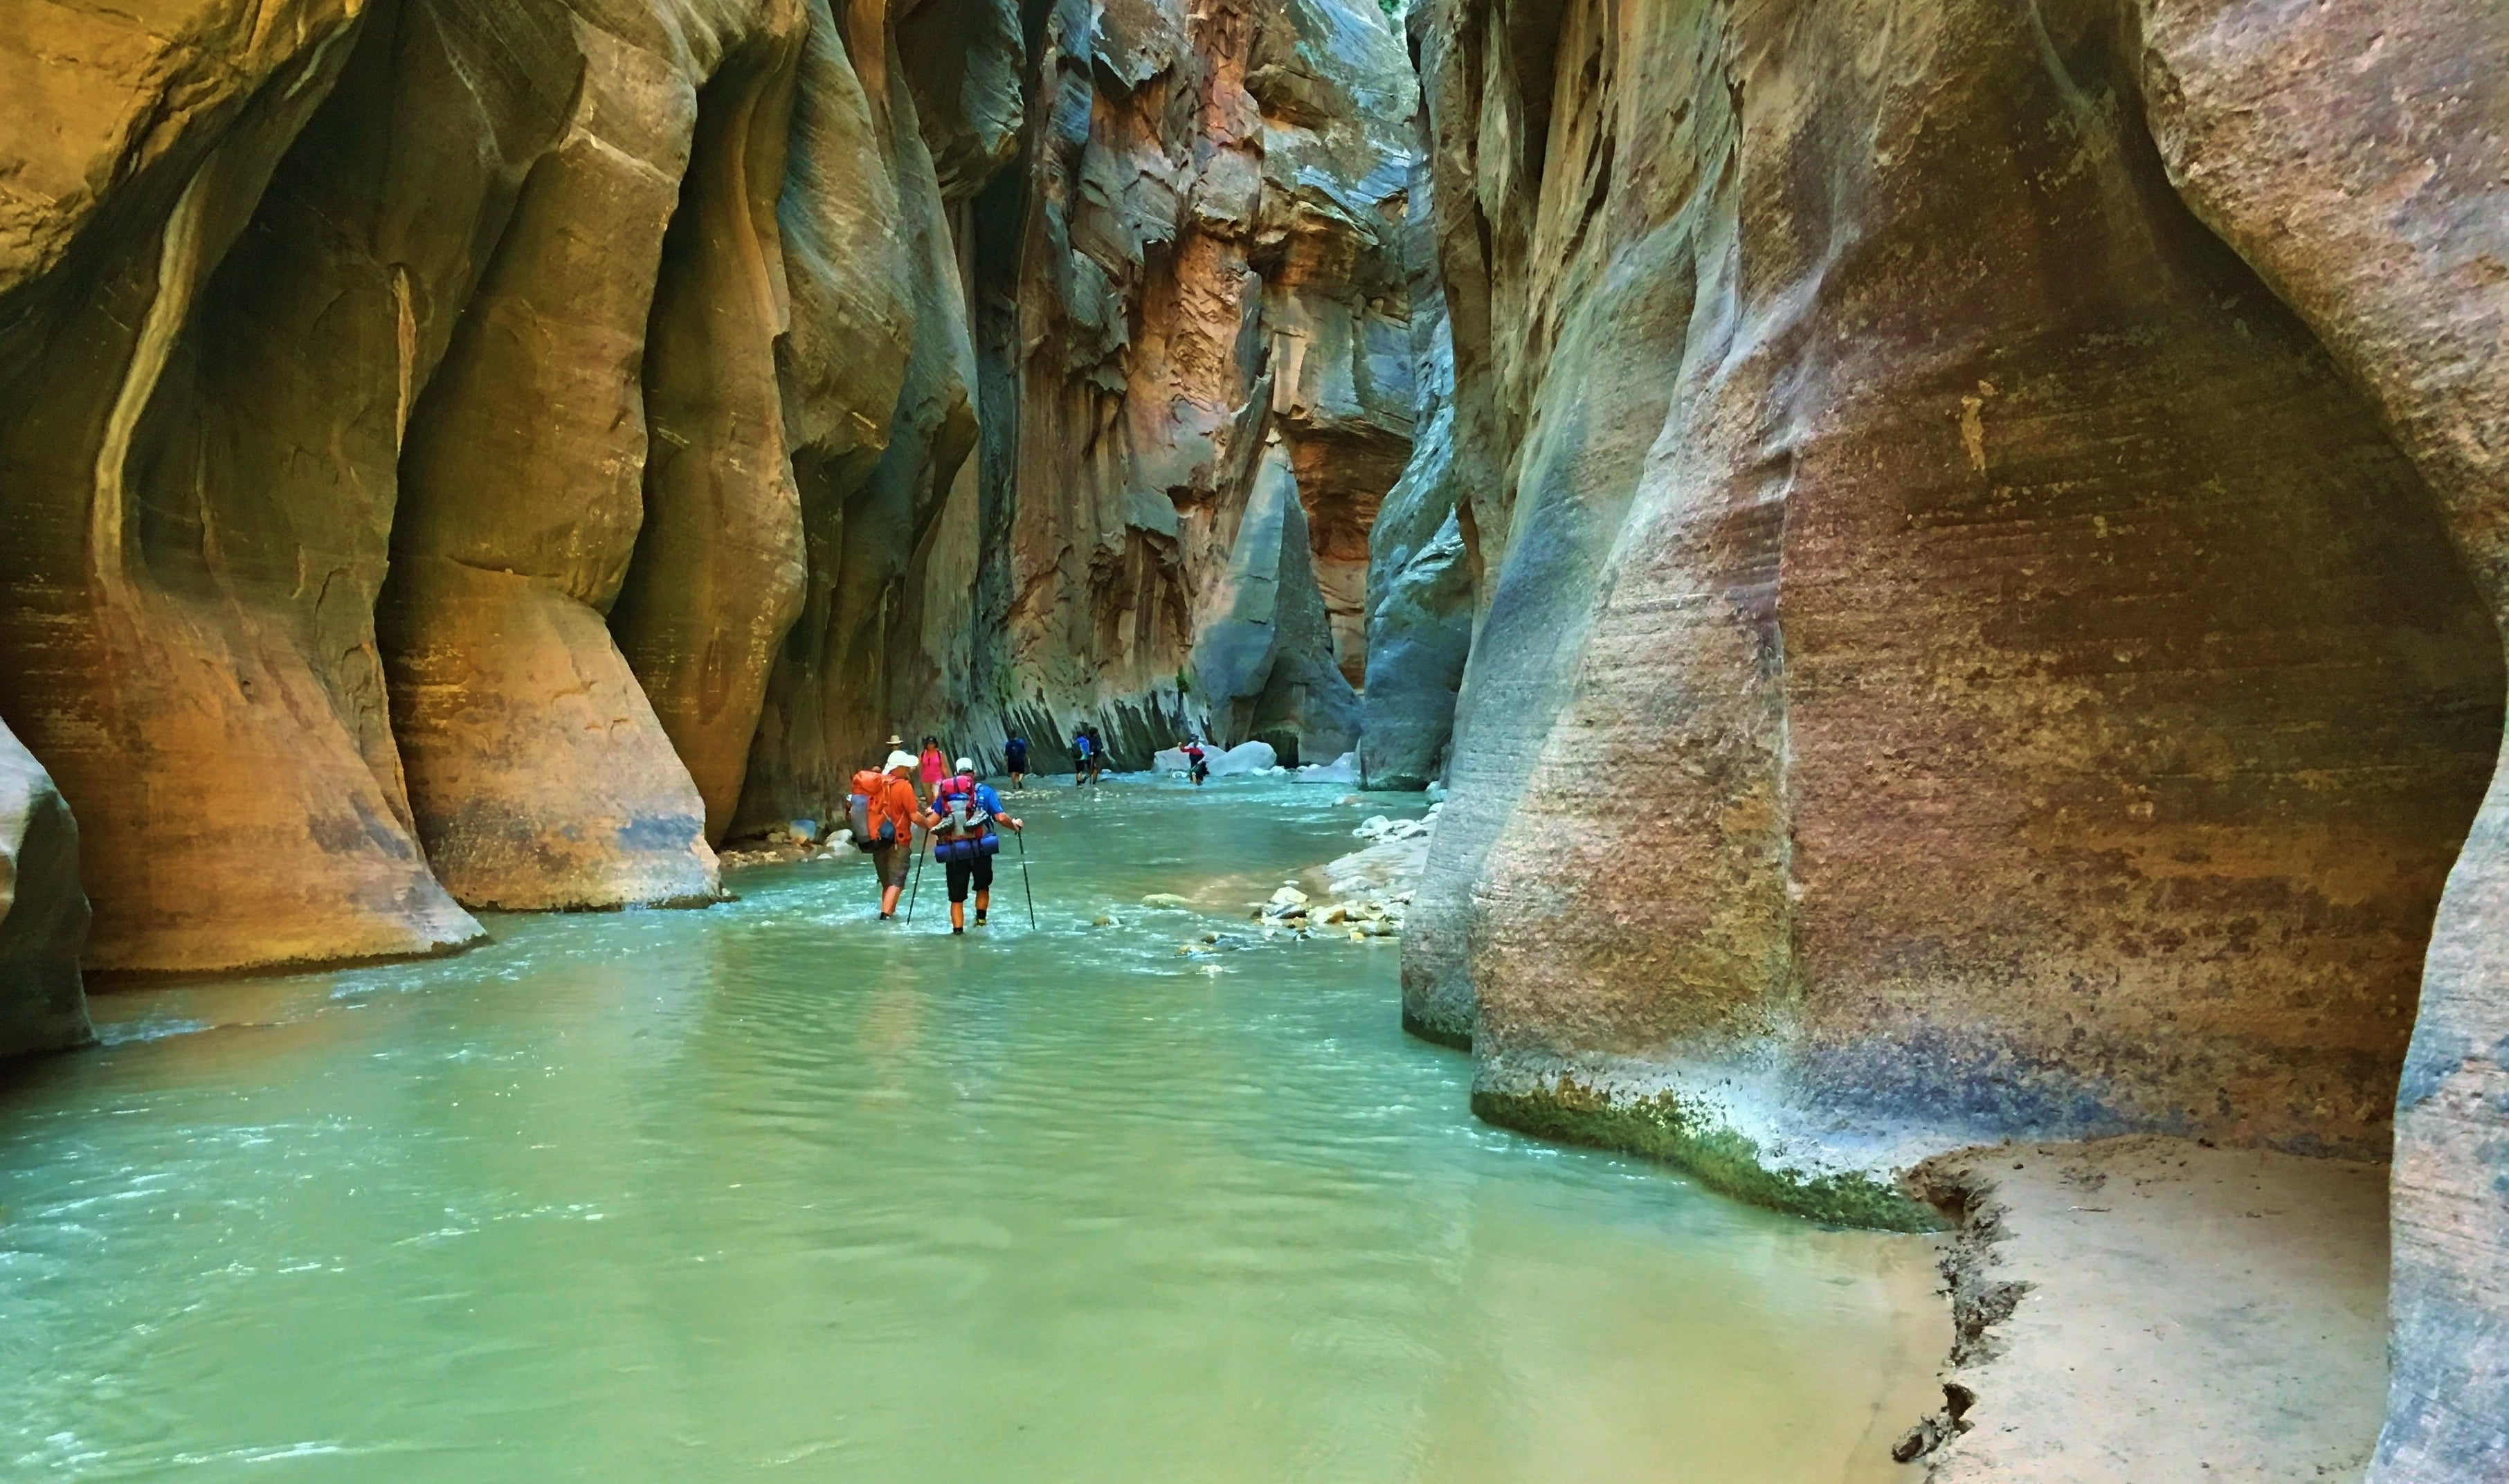 Expert Tips to Remember When Hiking The Narrows in Zion N.P. 70ecac27738b4